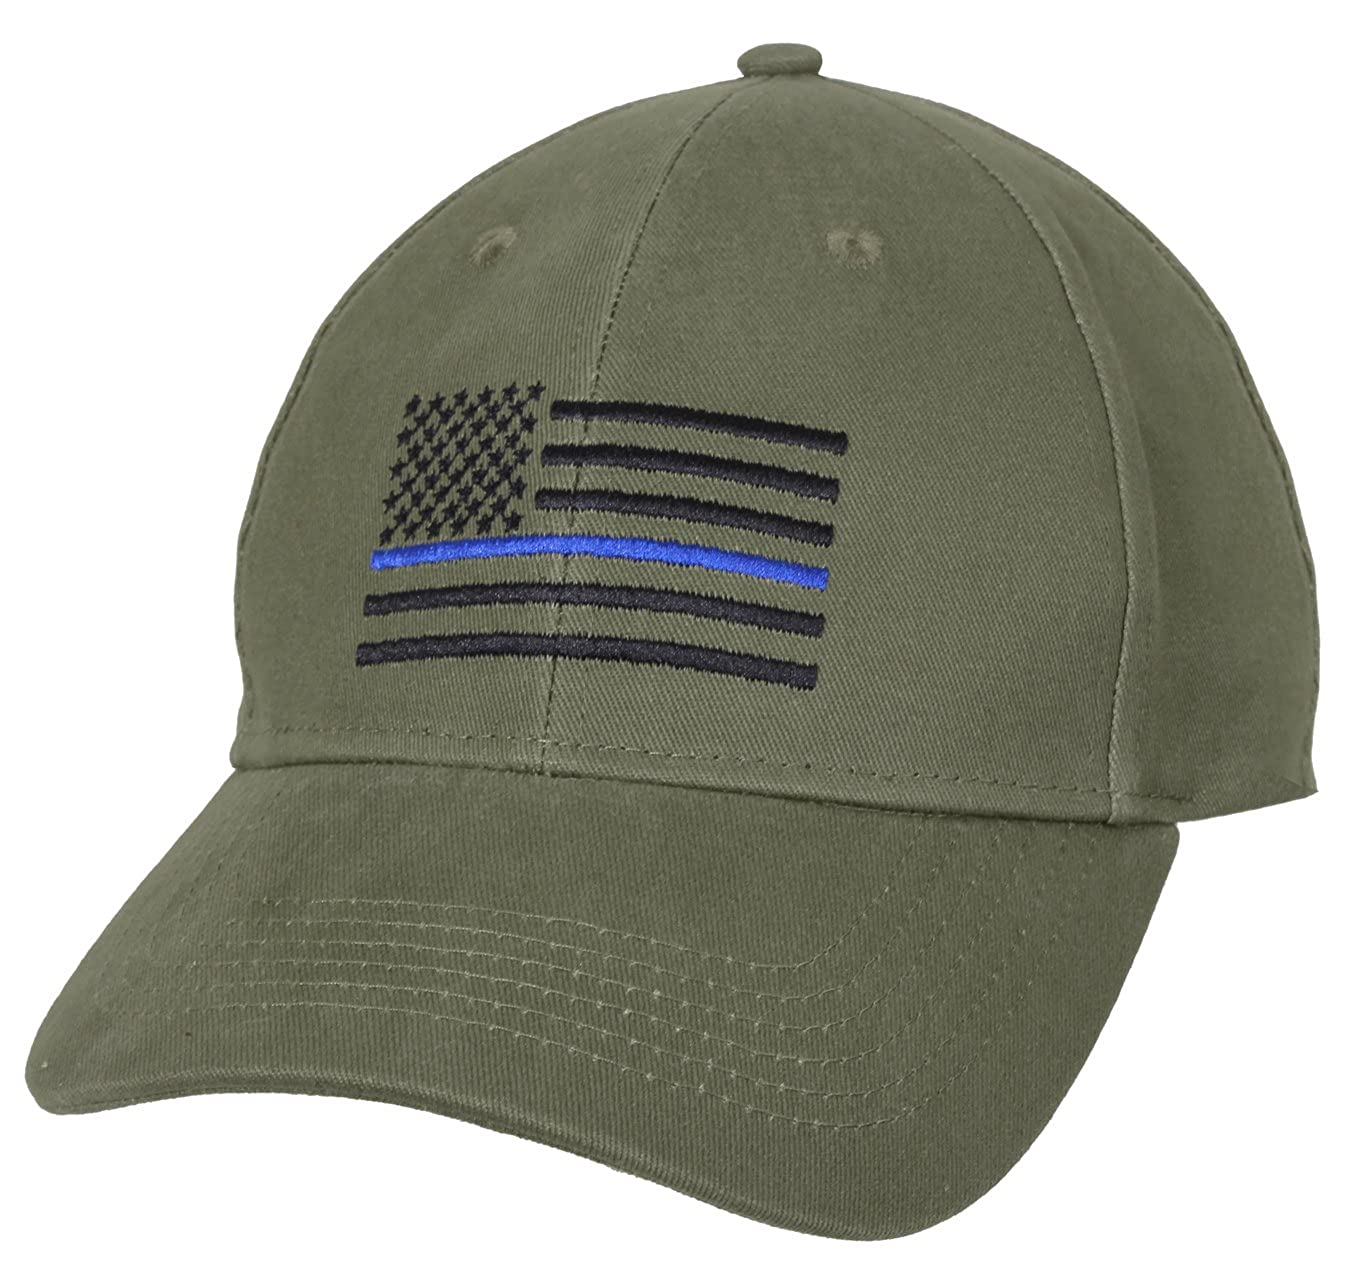 d1a9364c Amazon.com: Rothco Thin Blue Line Flag Low Profile Cap, Black: Sports &  Outdoors